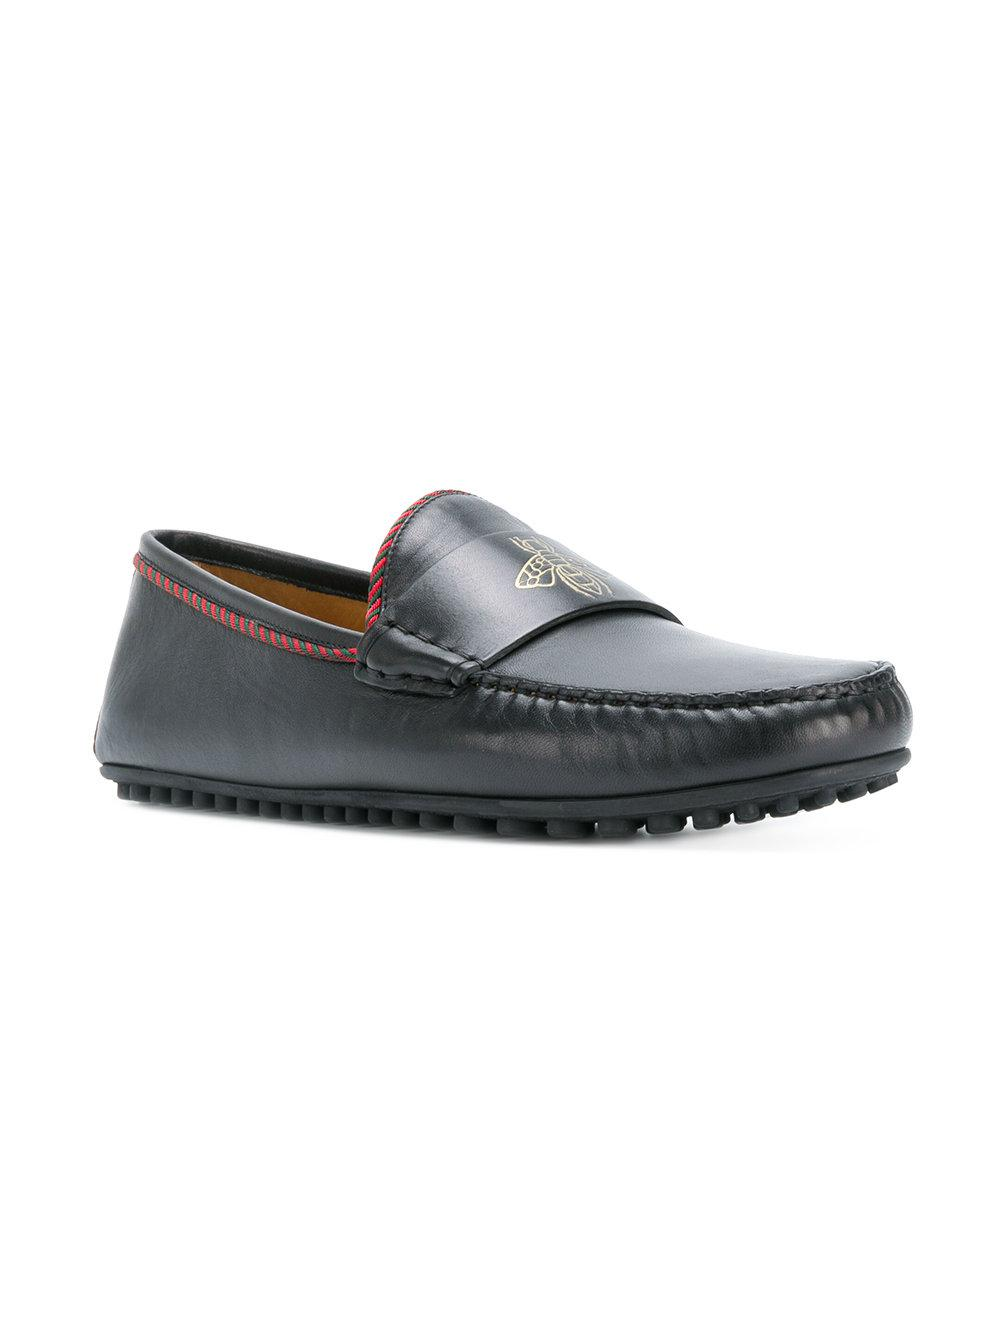 32f375a42 Gucci Kanye Bee Keeper Driving Shoes in Black for Men - Lyst